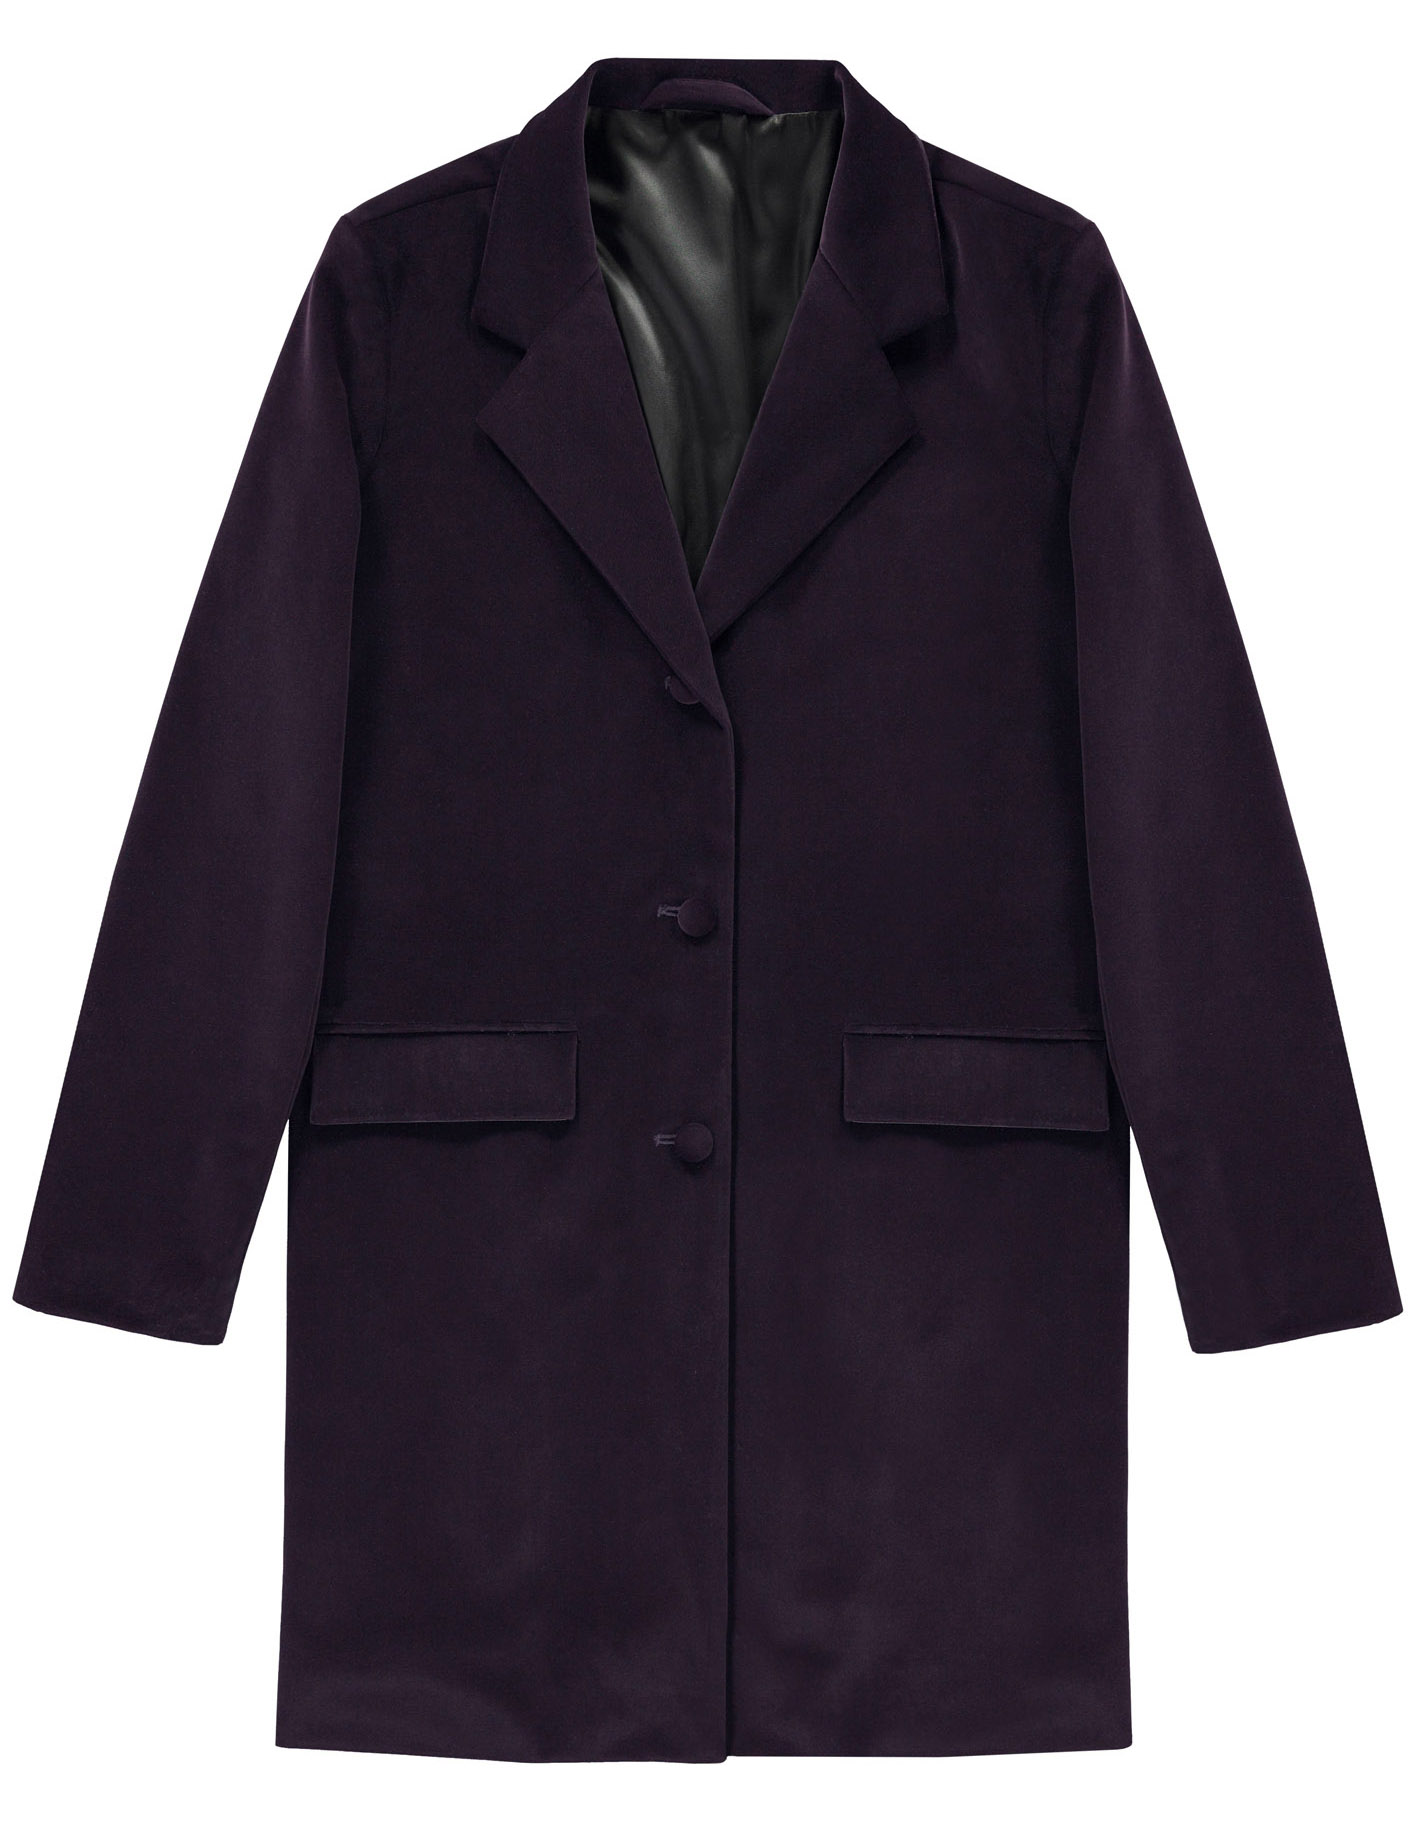 TITLE-A-FW15-VELVET-HOLIDAY-COAT-PLUM-FLAT-WEB